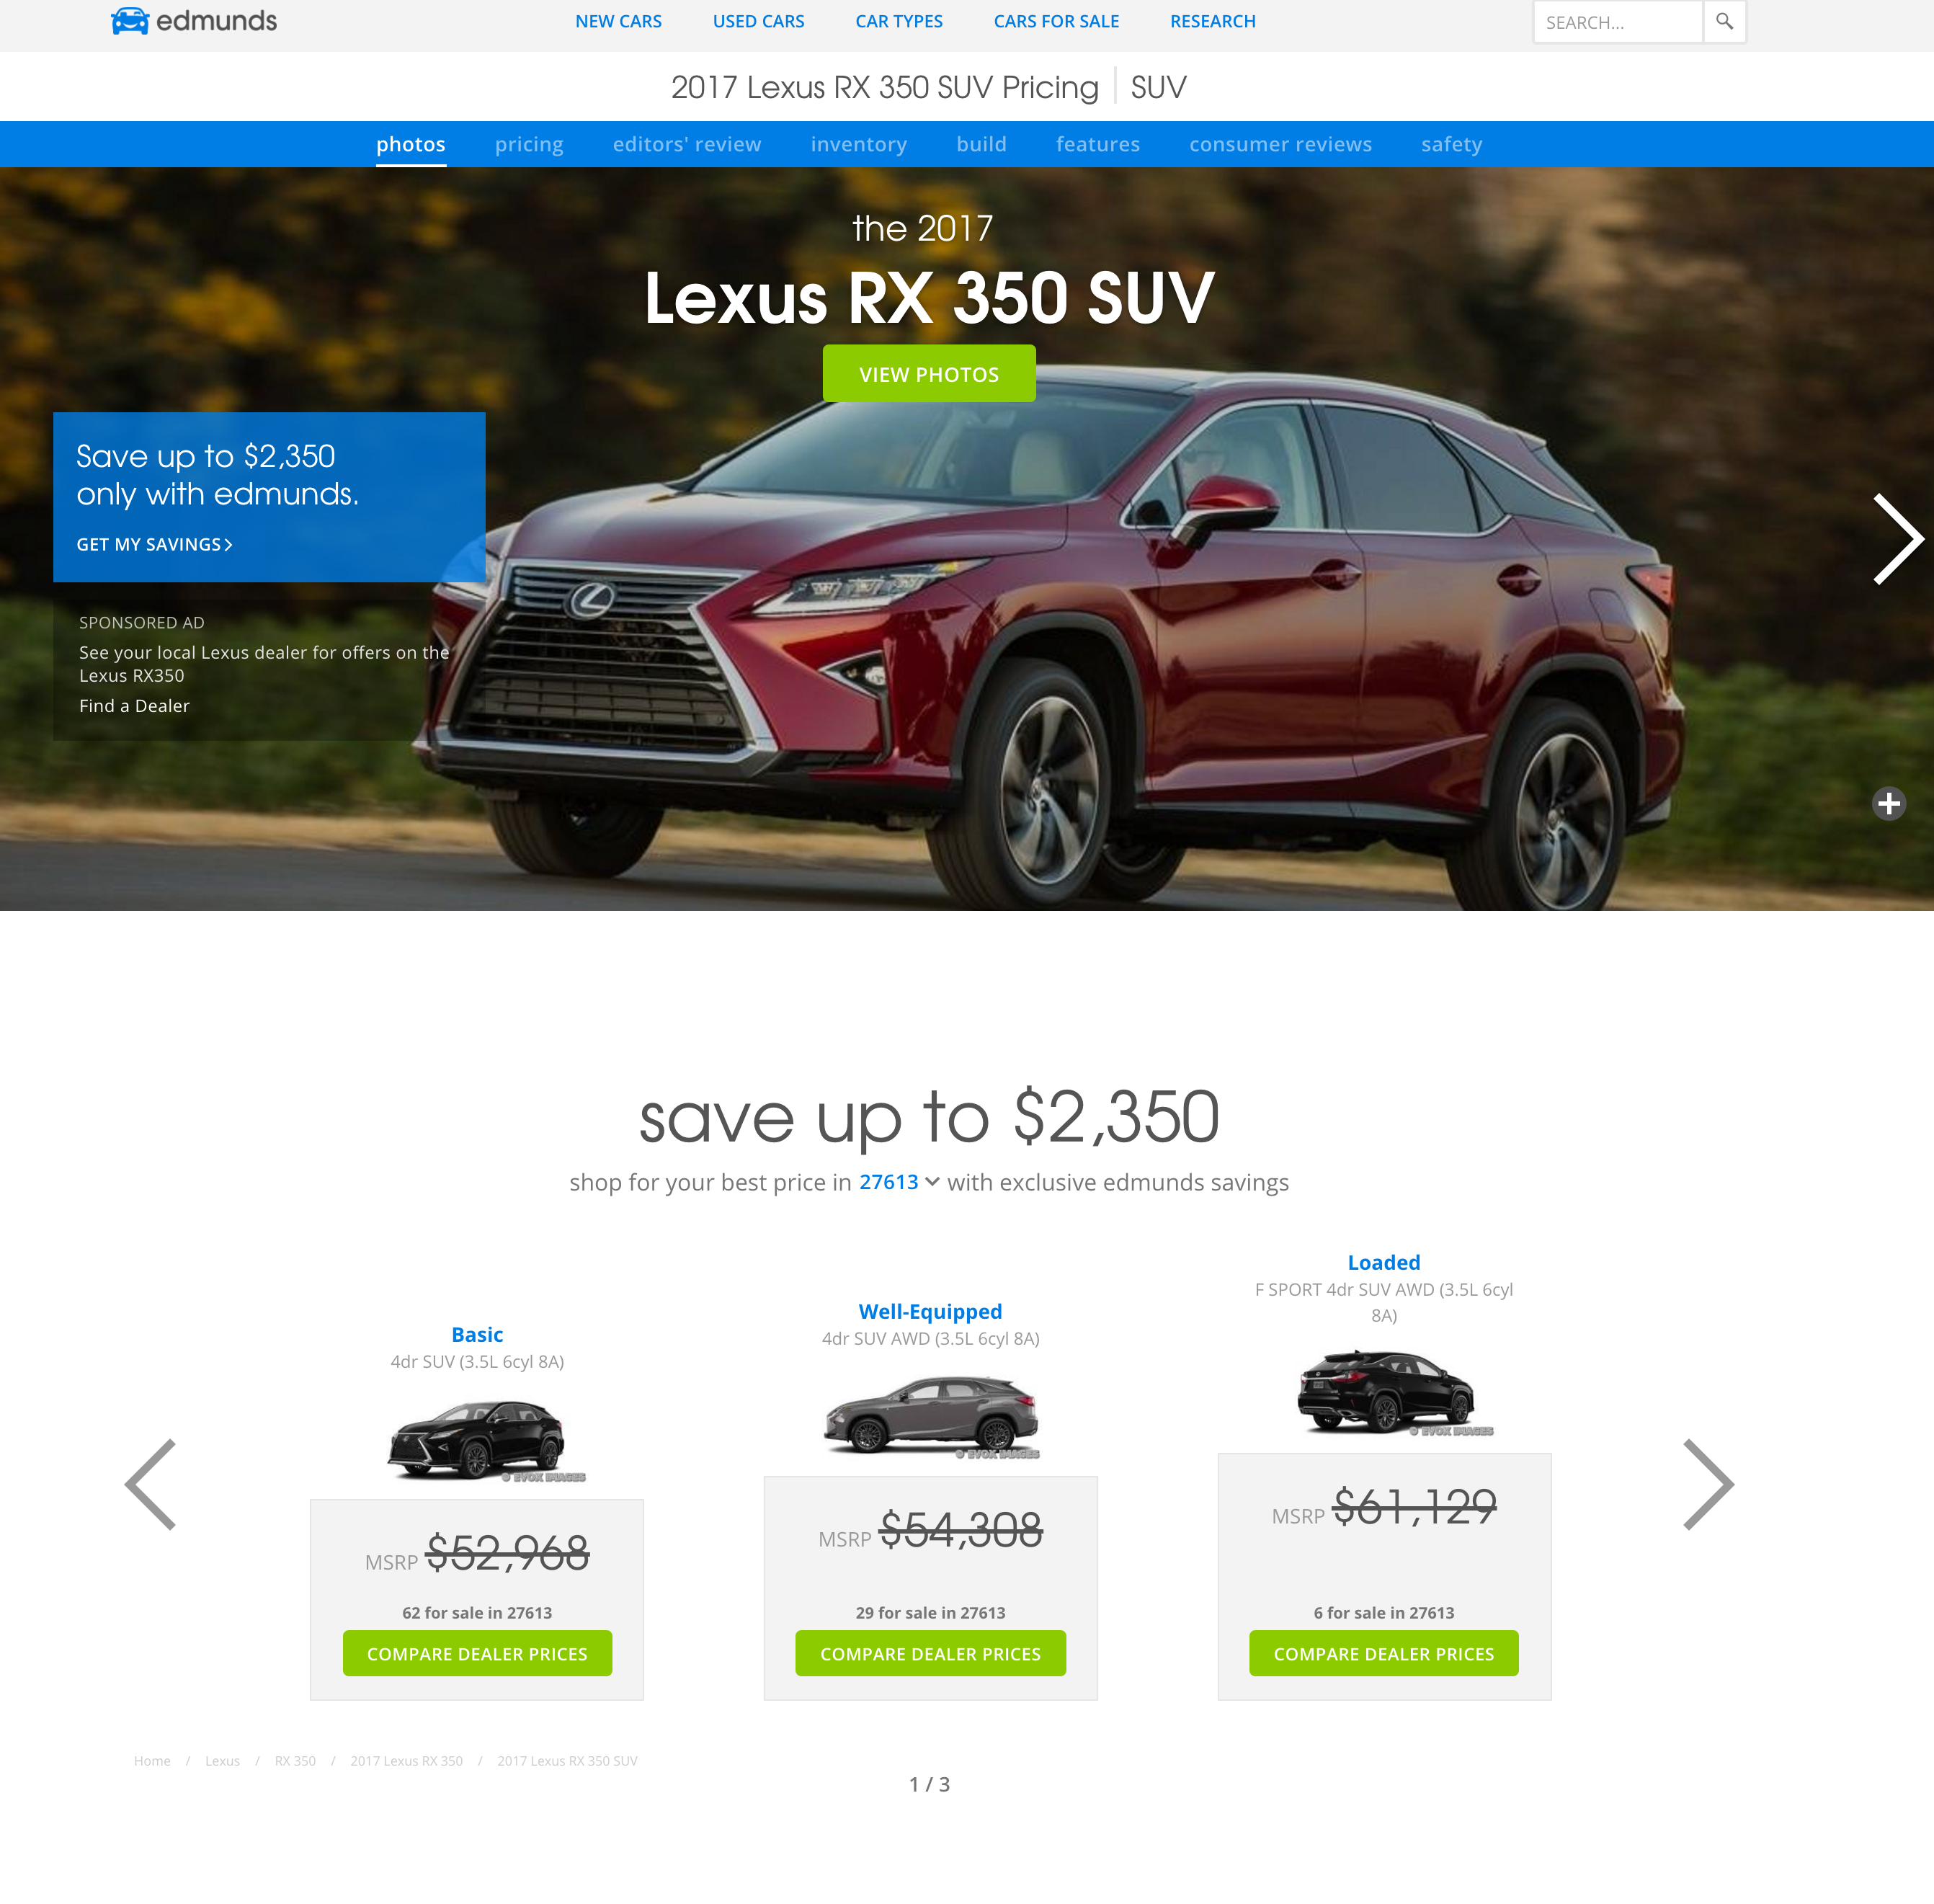 023 edmunds used car reviews best of introducing the new website help center invoice template prices